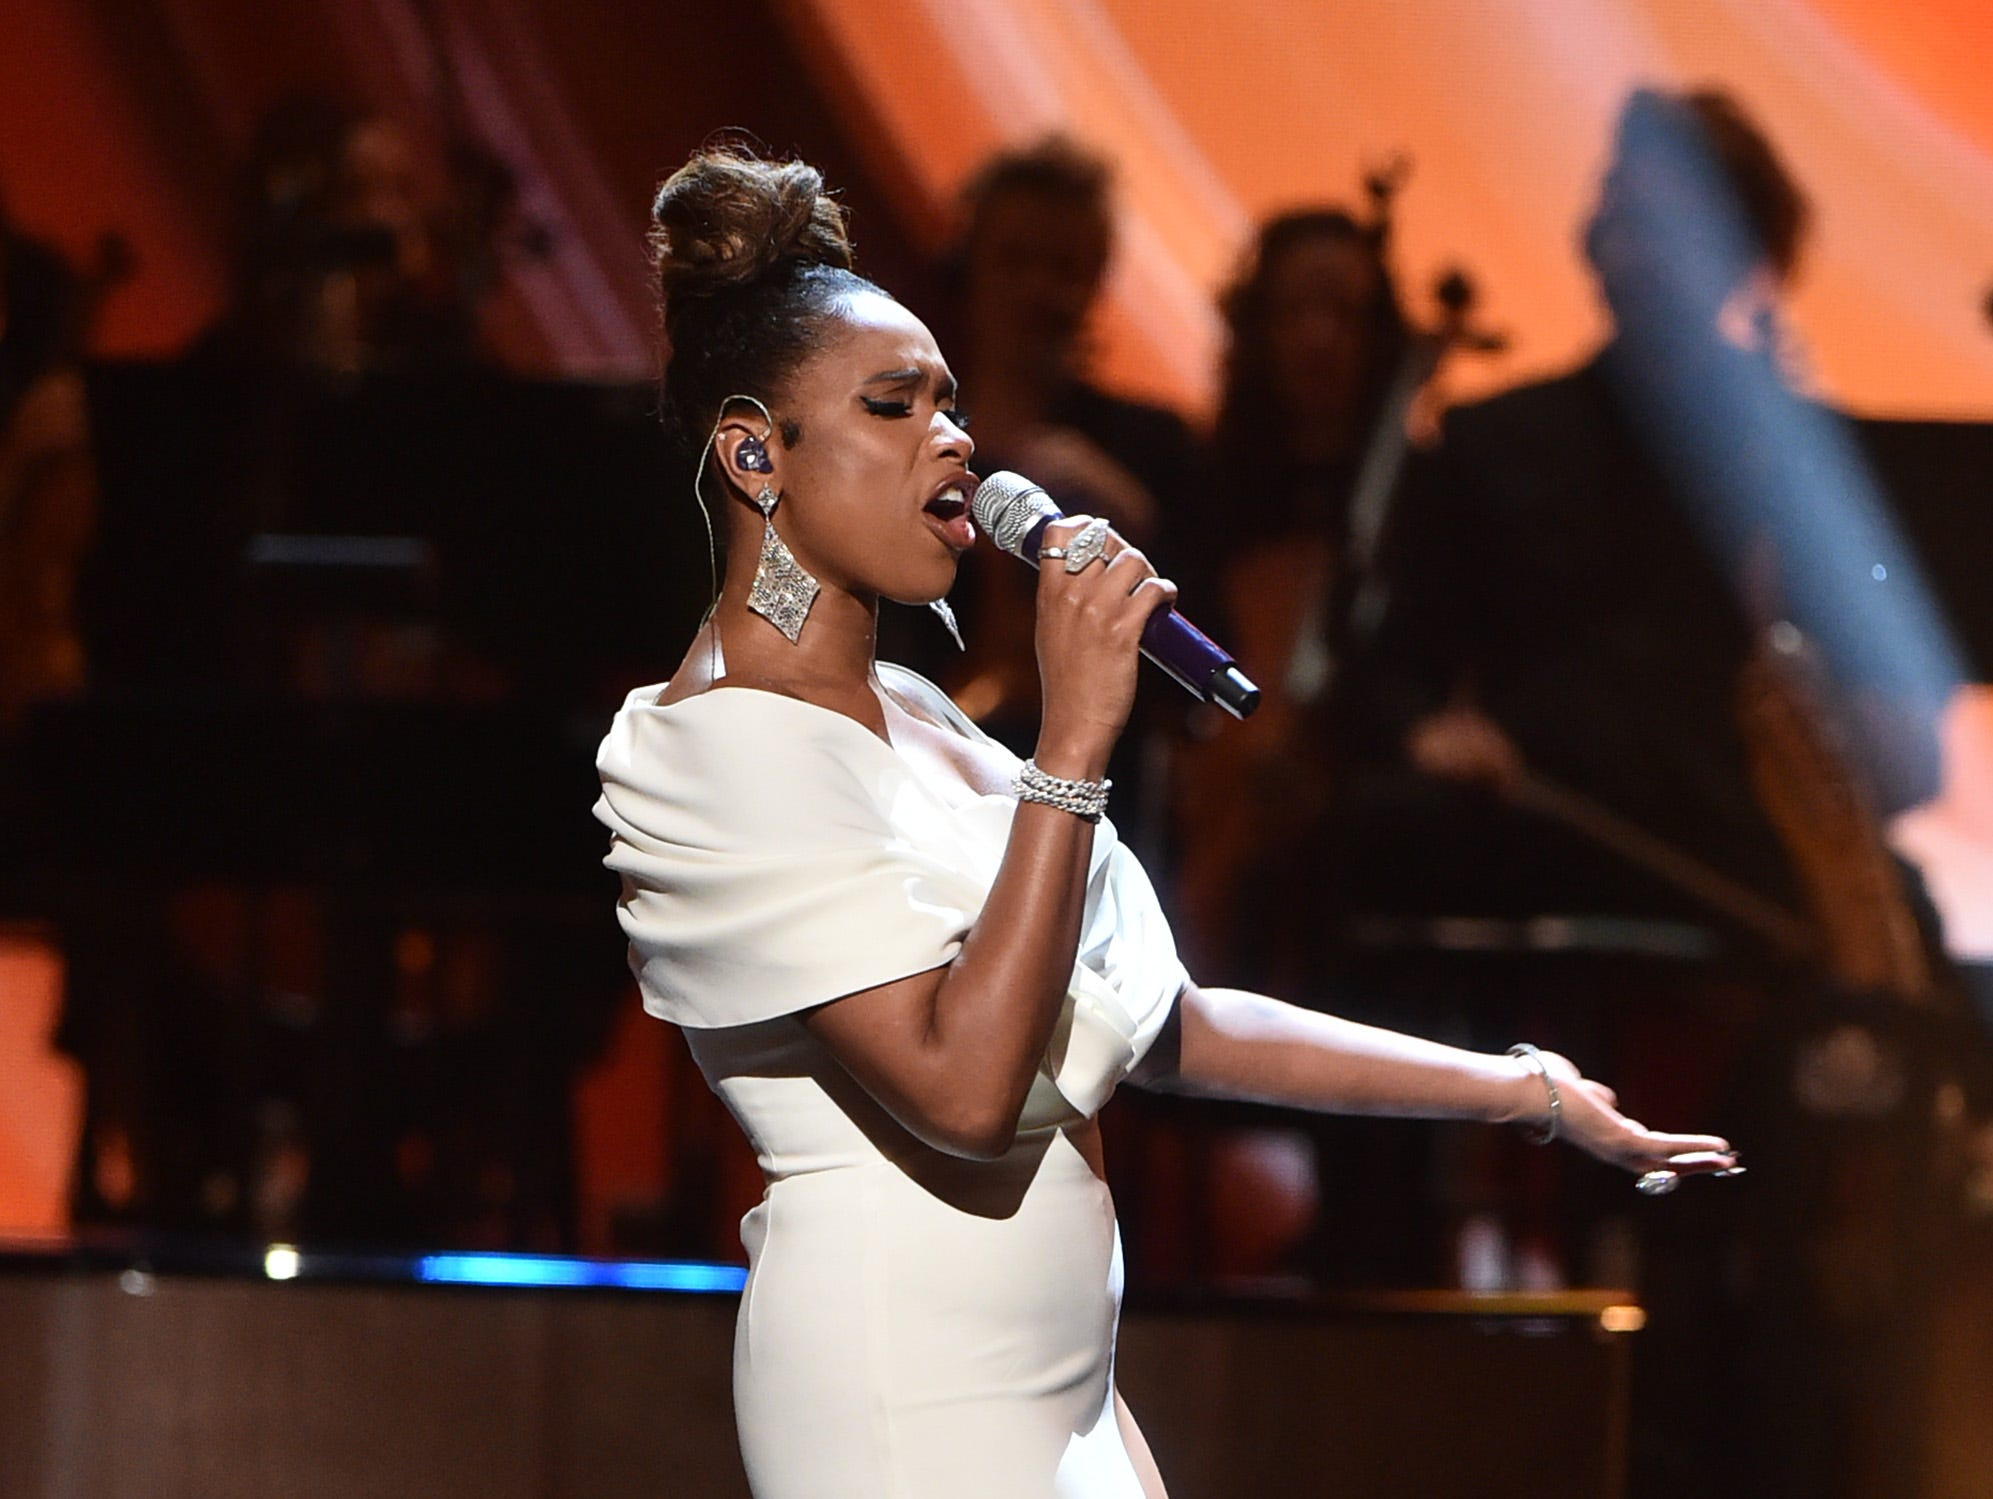 """LOS ANGELES, CA - JANUARY 13:  Jennifer Hudson performs at """"Aretha! A Grammy Celebration For the Queen Of Soul"""" at the Shrine Auditorium on Jan. 13, 2019, in Los Angeles, Calif."""